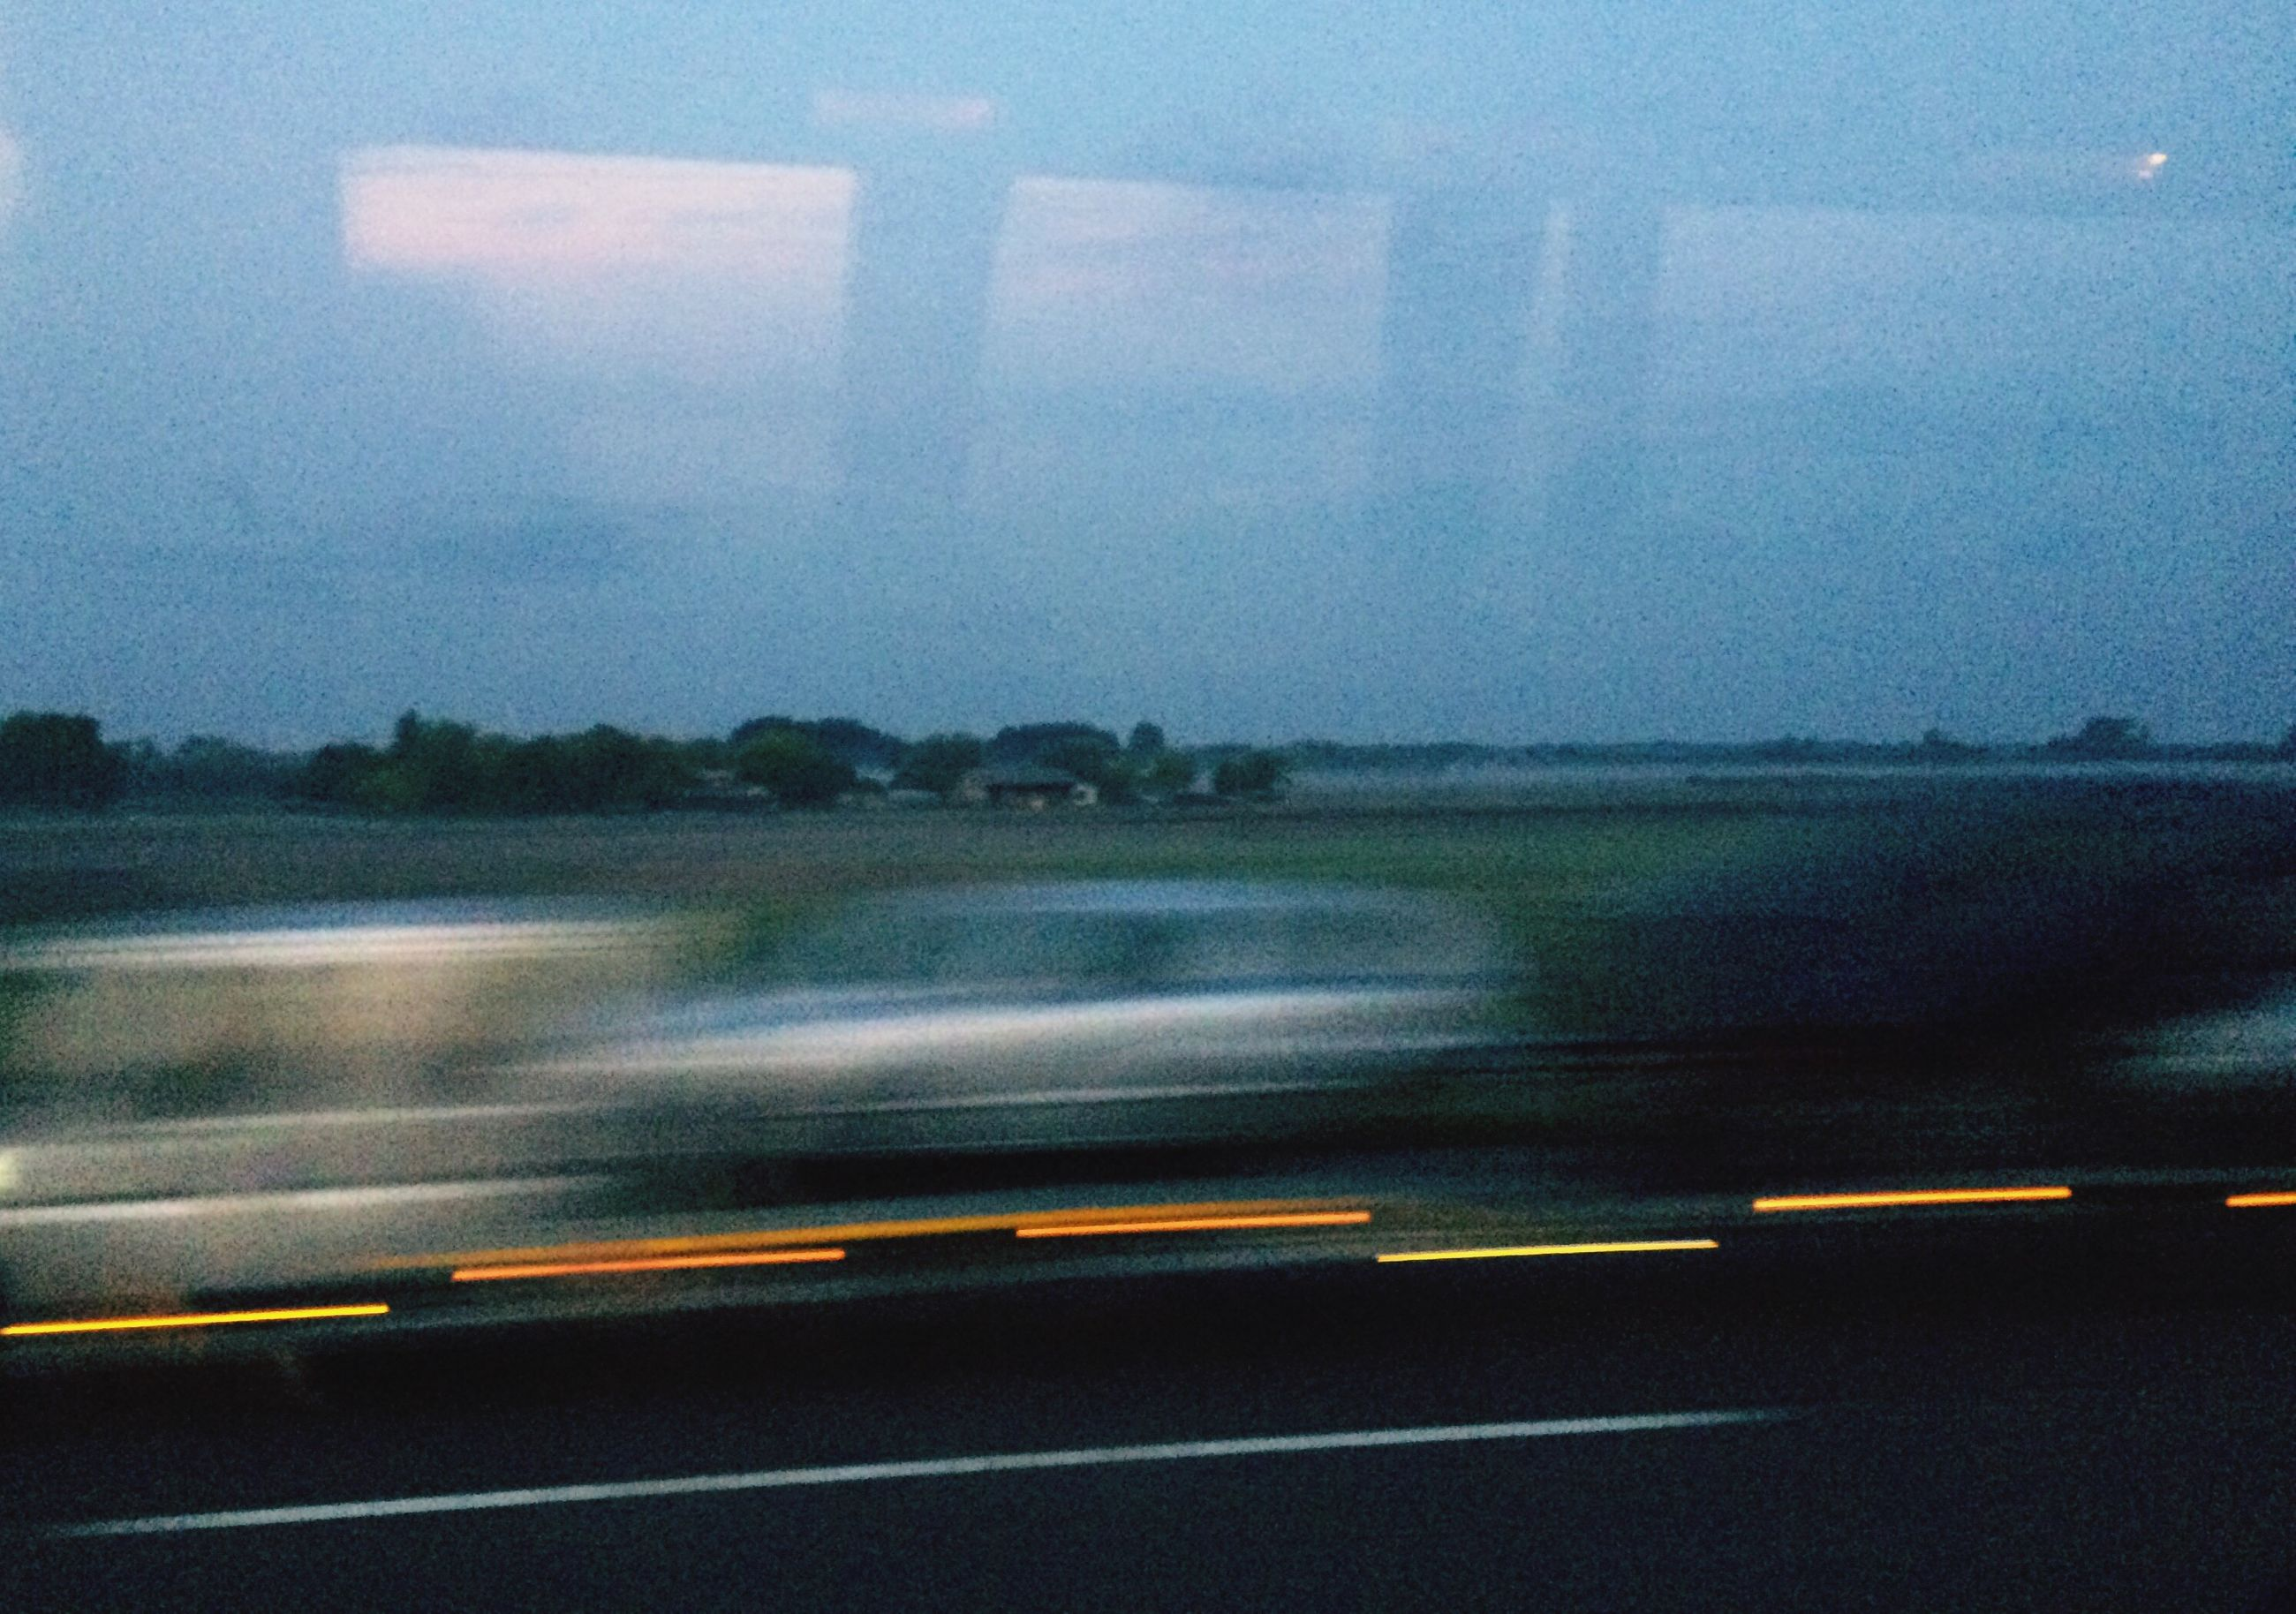 blurred motion, motion, road, transportation, speed, no people, sky, land vehicle, day, outdoors, nature